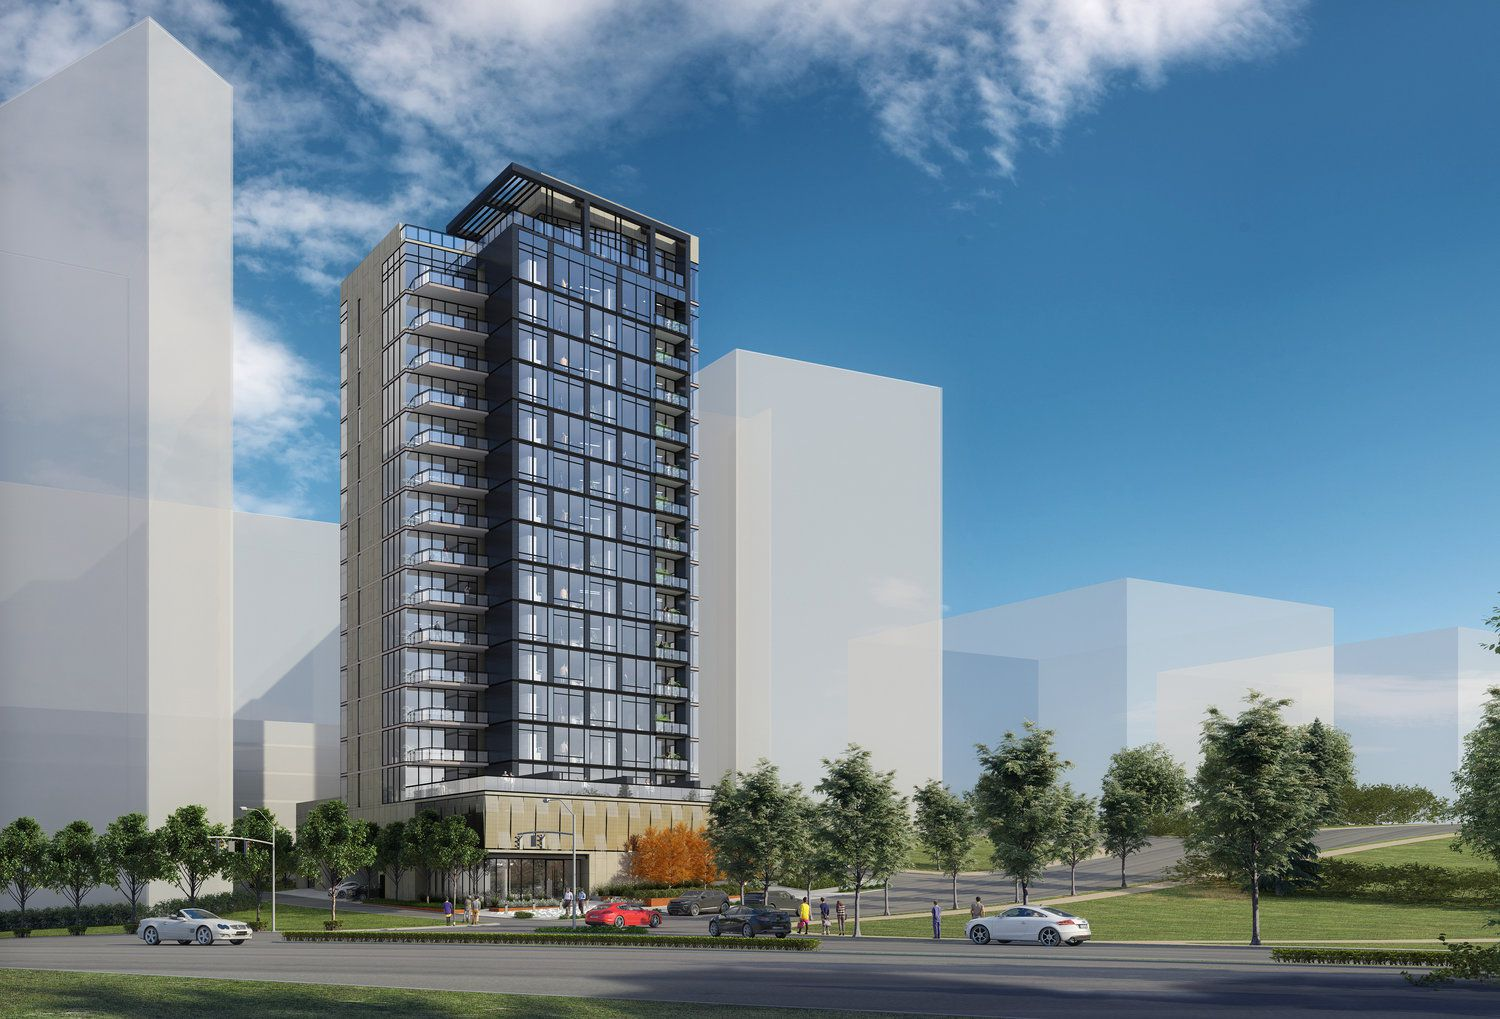 The residential tower is planned on Hall Street at Turtle Creek Boulevard — just across from Turtle Creek Park.